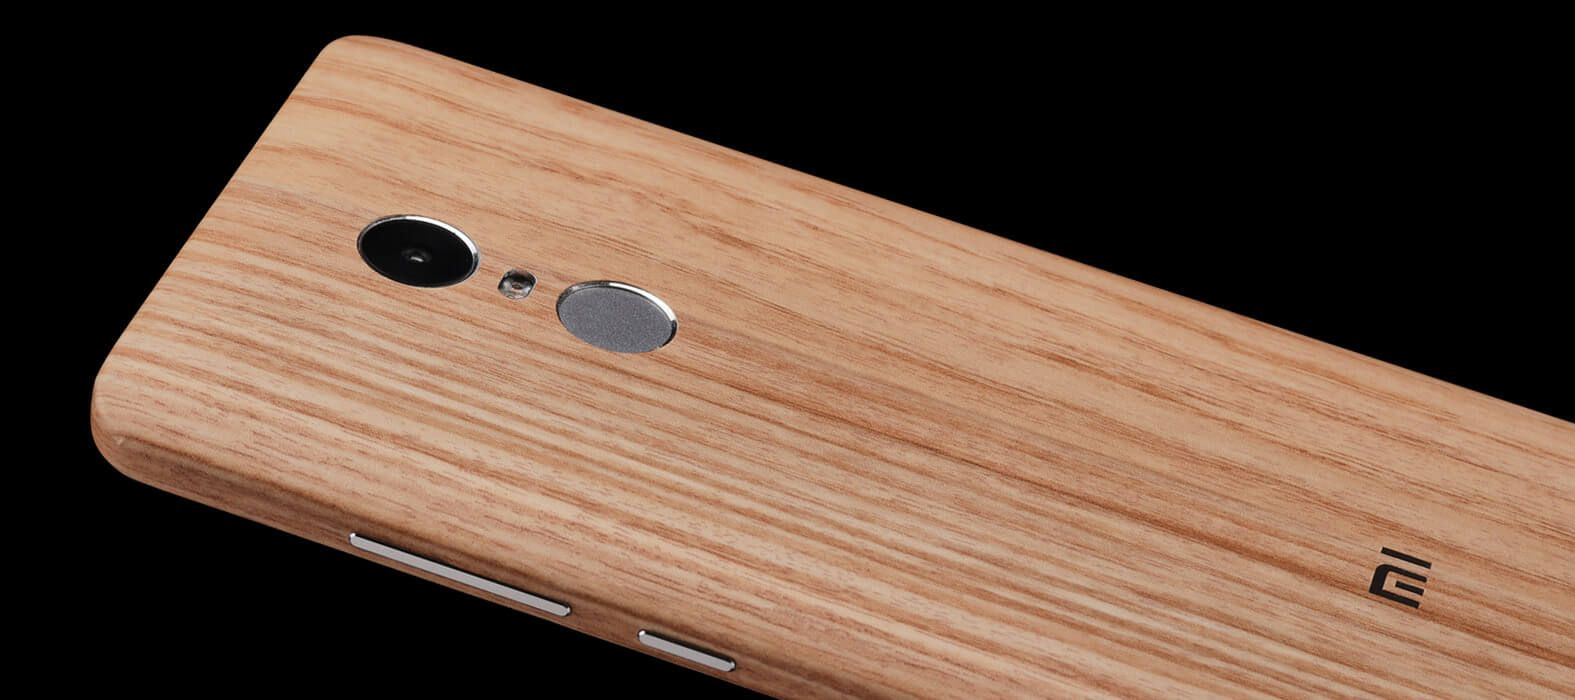 Bamboo Wood Redmi Note 4 Wraps & Skins